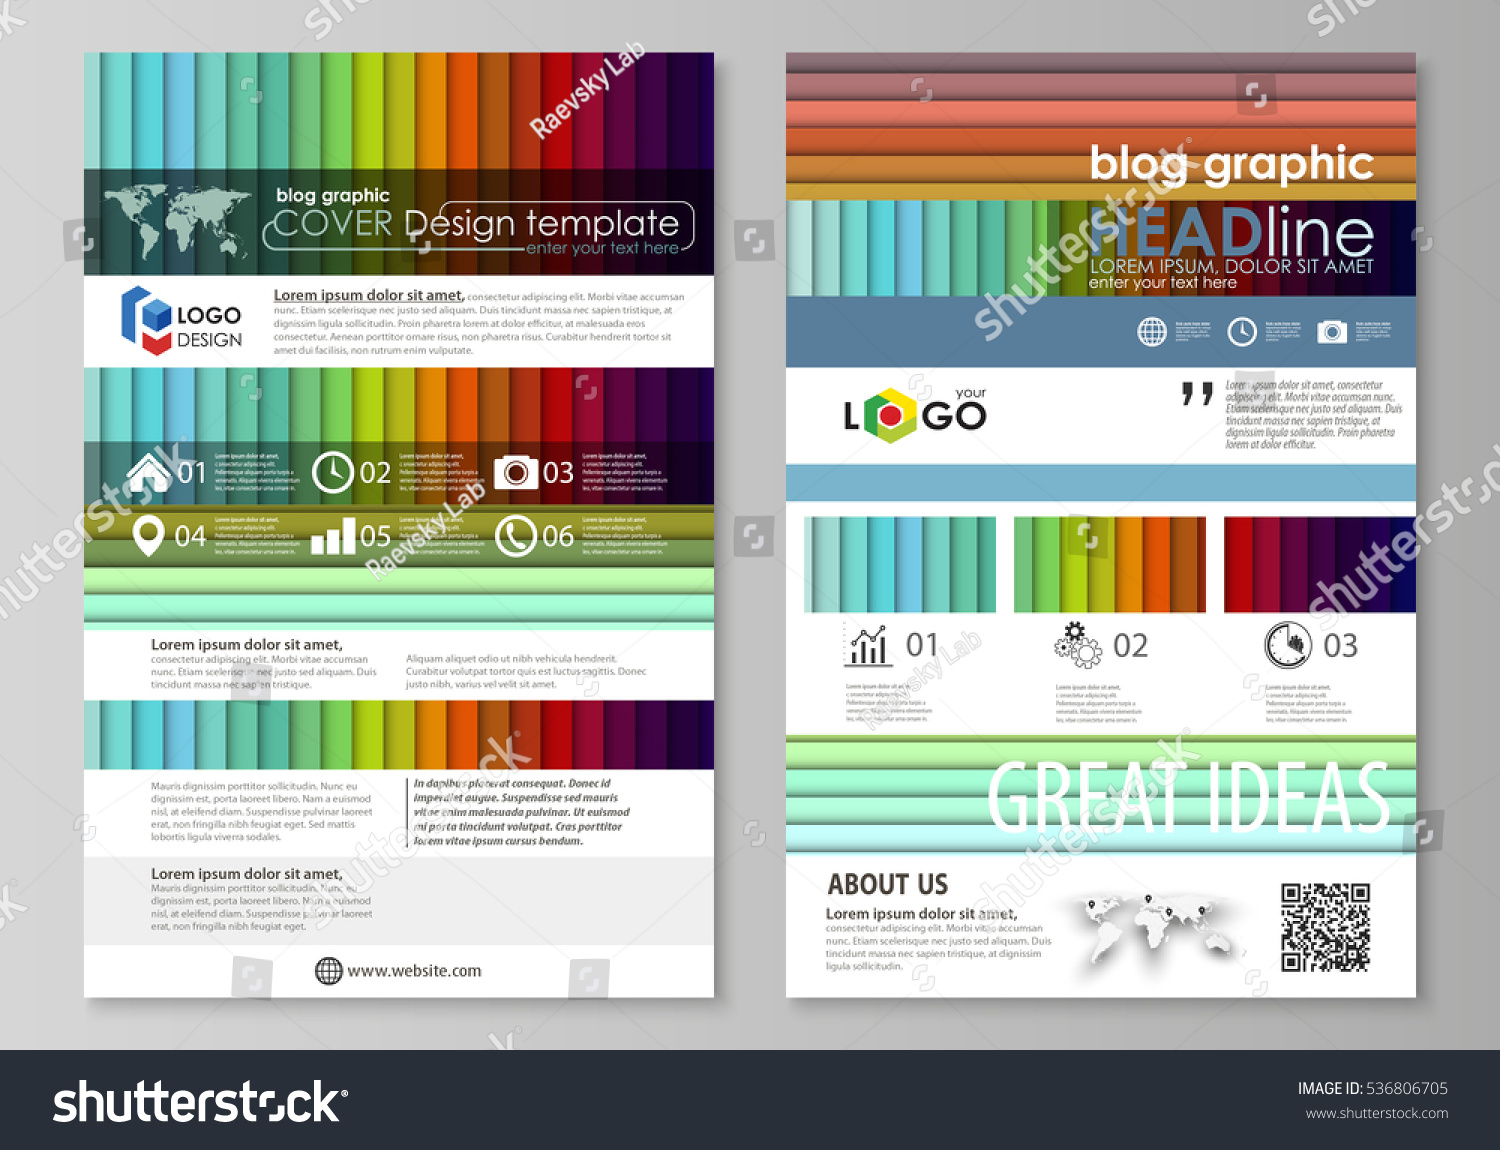 Blog Graphic Business Templates Page Website Stock Vector 536806705 ...